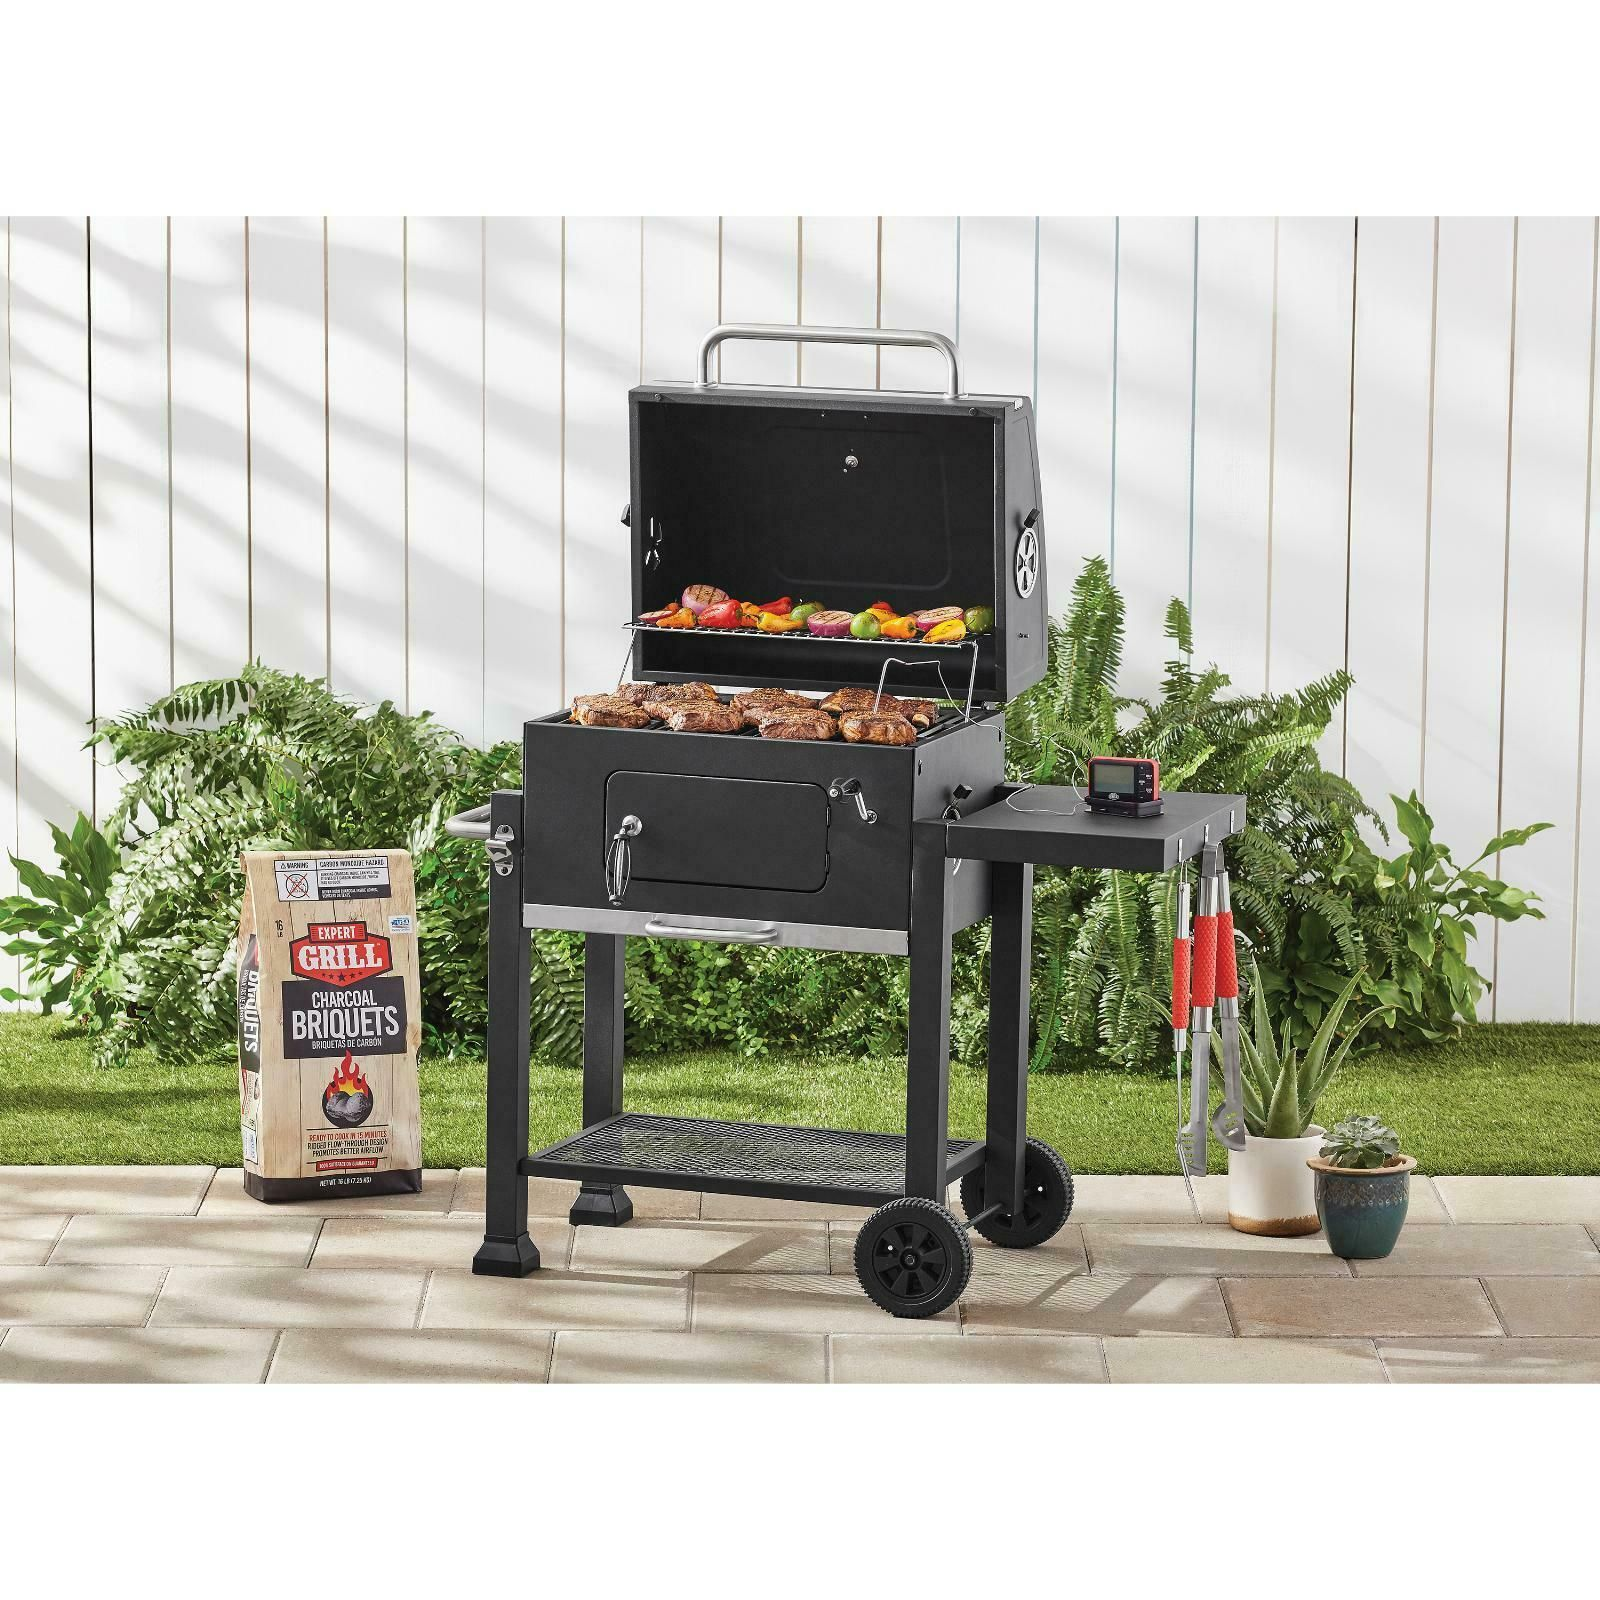 Heavy Duty 24in Charcoal Grill Bbq Outdoor Camping Barbecue Patio Burner Smoker Smokers Ideas Of Smokers Smokers Charcoal Grill Barbecue Smoker Grilling